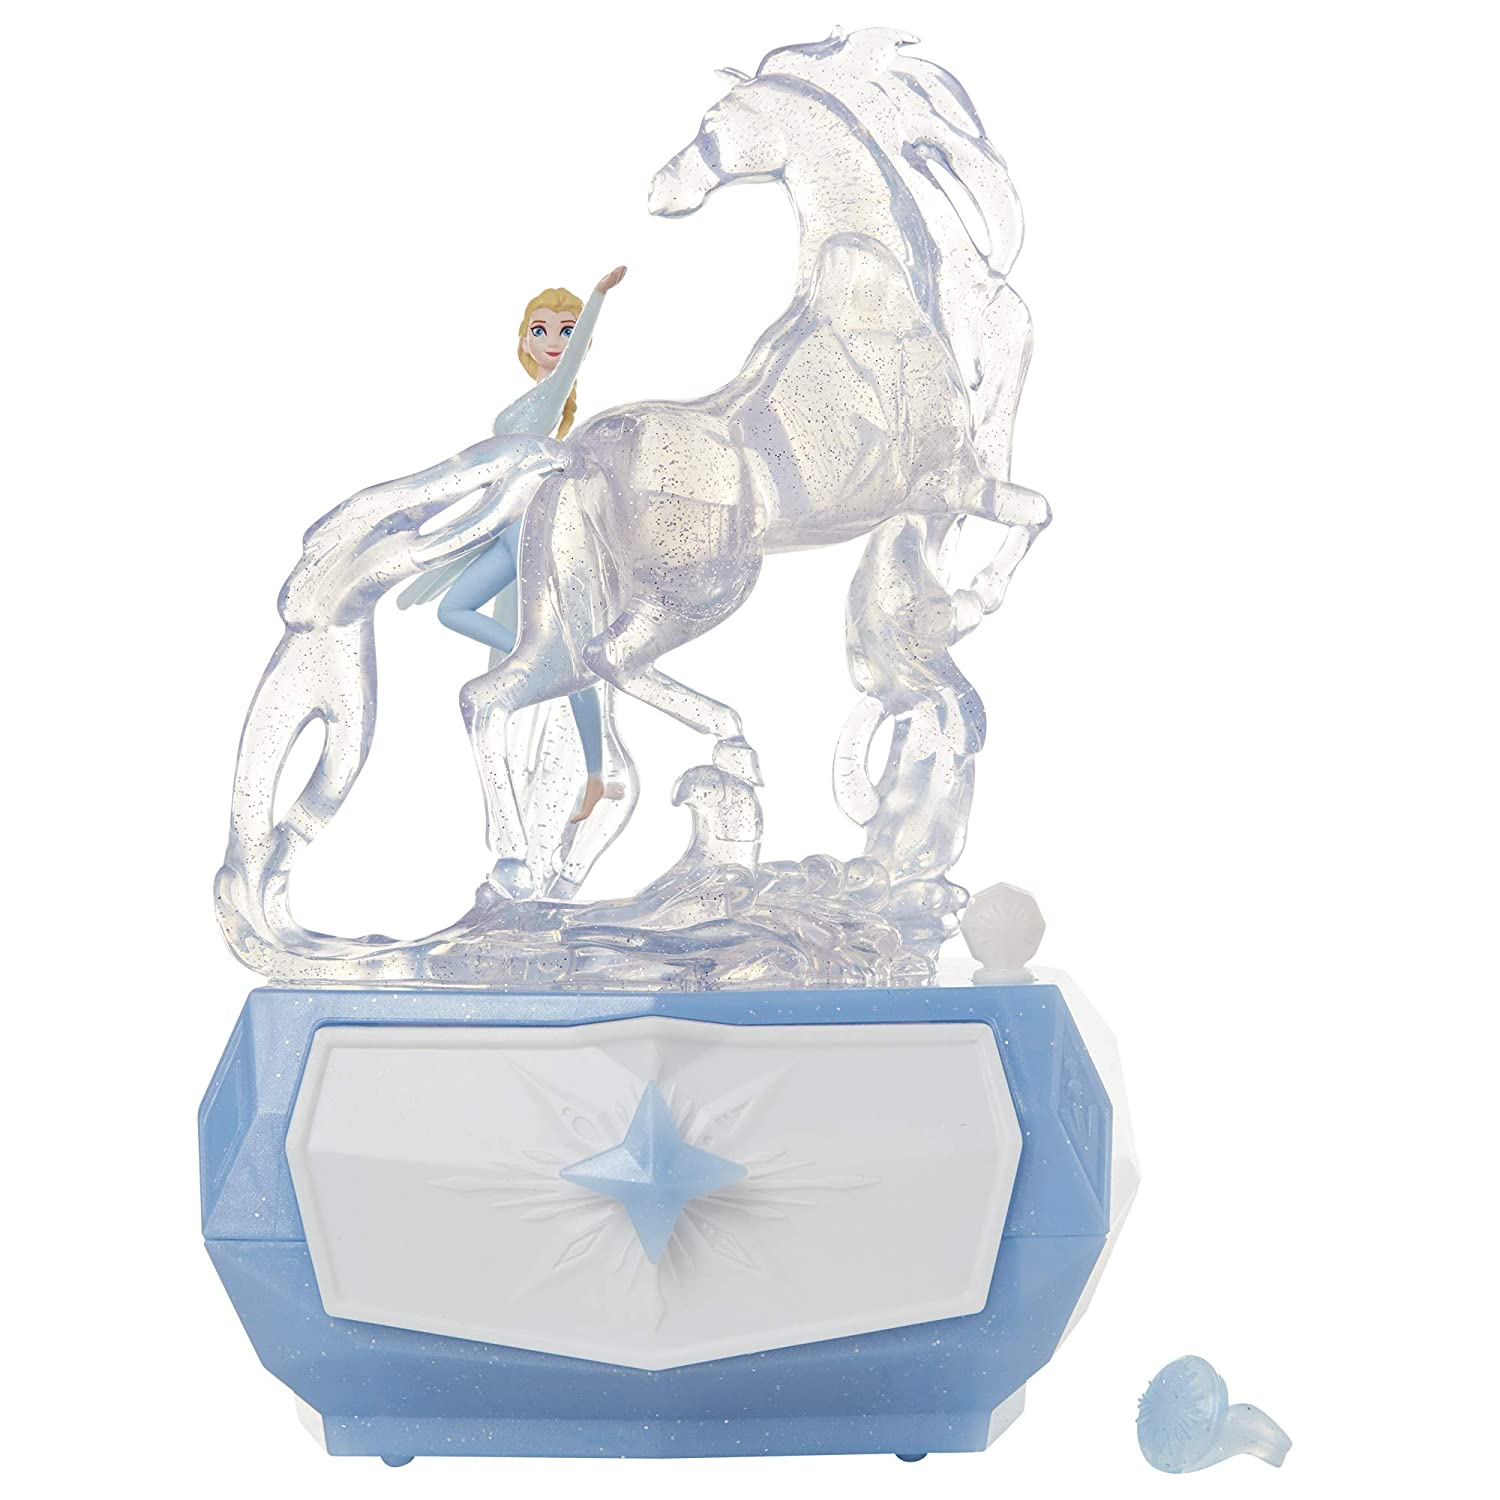 Disney Frozen 2 Elsa /& Water Nokk Jewelry Box with Snowflake Ring Toy Gift NEW